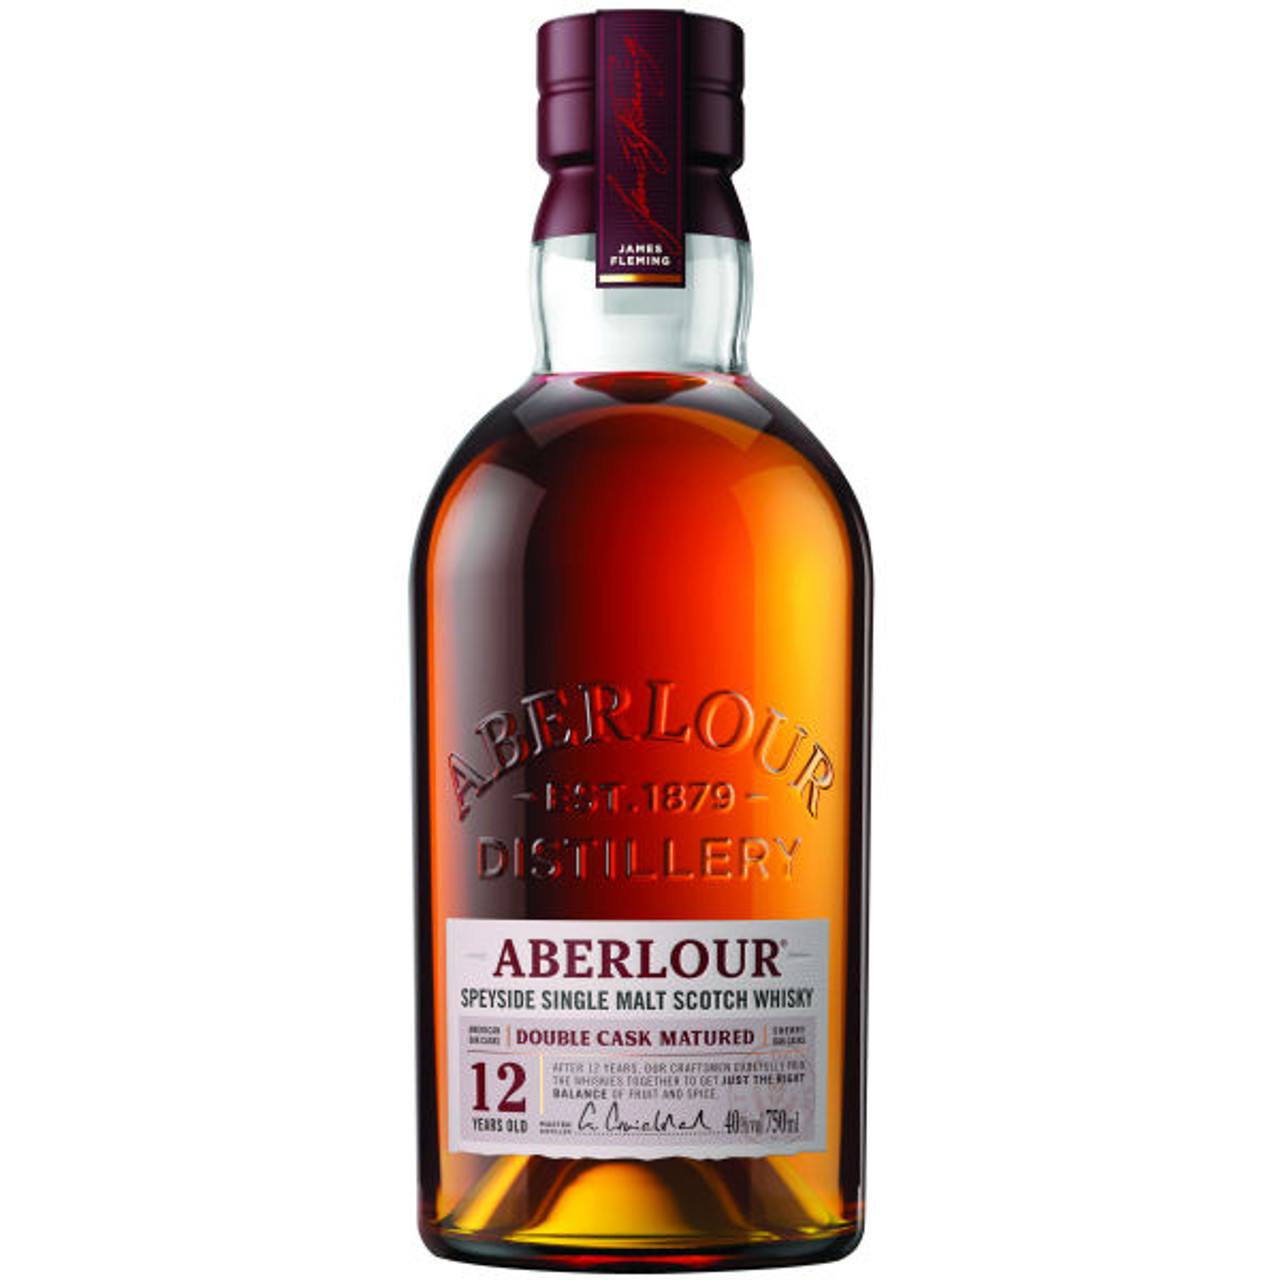 Aberlour 12 Year Old Double Cask Matured Highland Single Malt ...